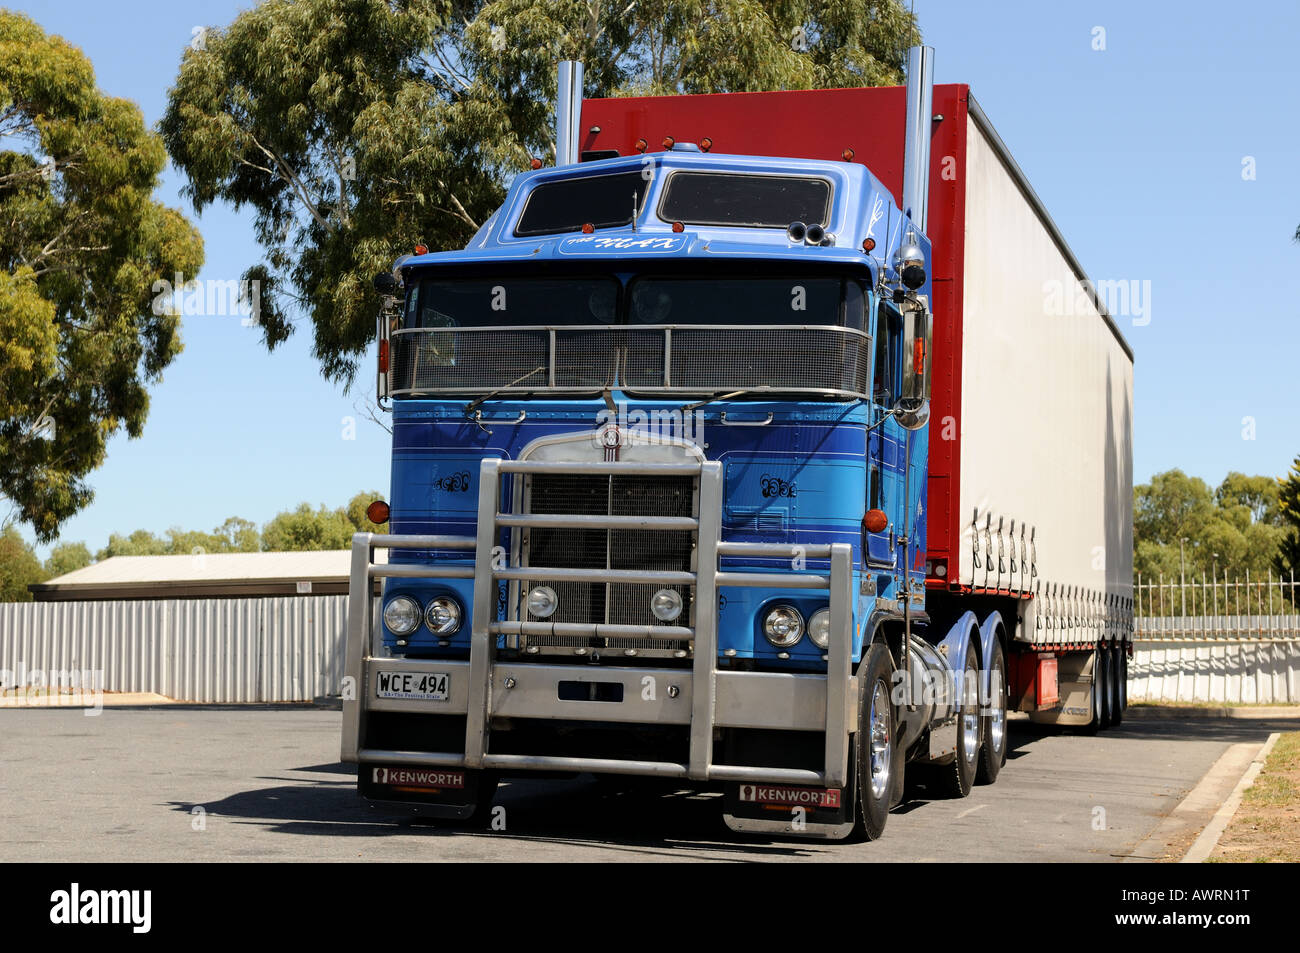 Cabover Truck Stock Photos & Cabover Truck Stock Images - Alamy